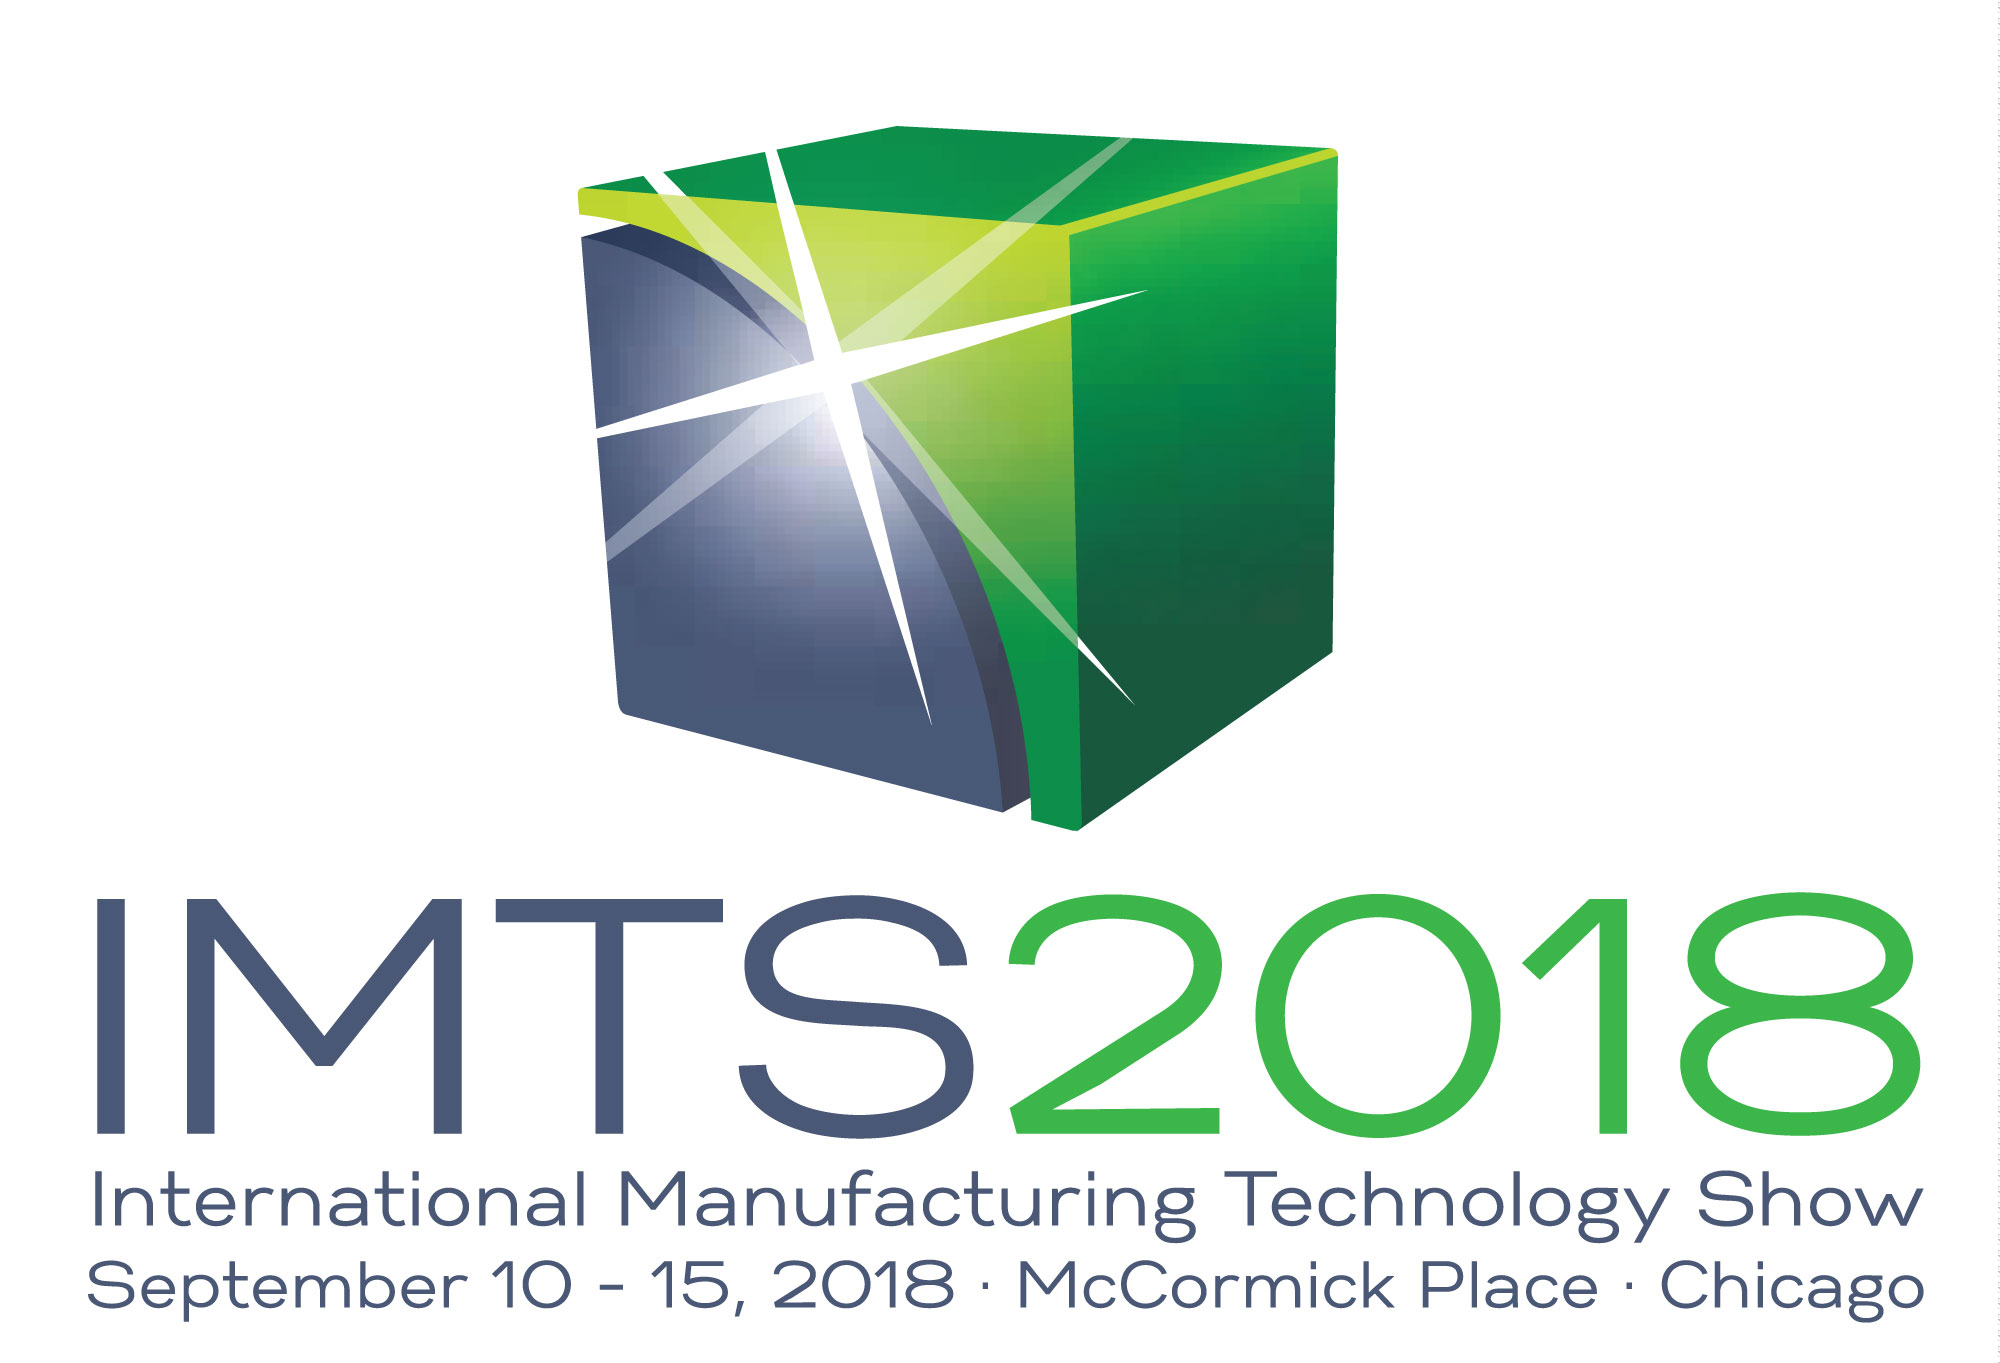 IMTS 2018, September 10 -15, 2018, McCormick Place, Chicago